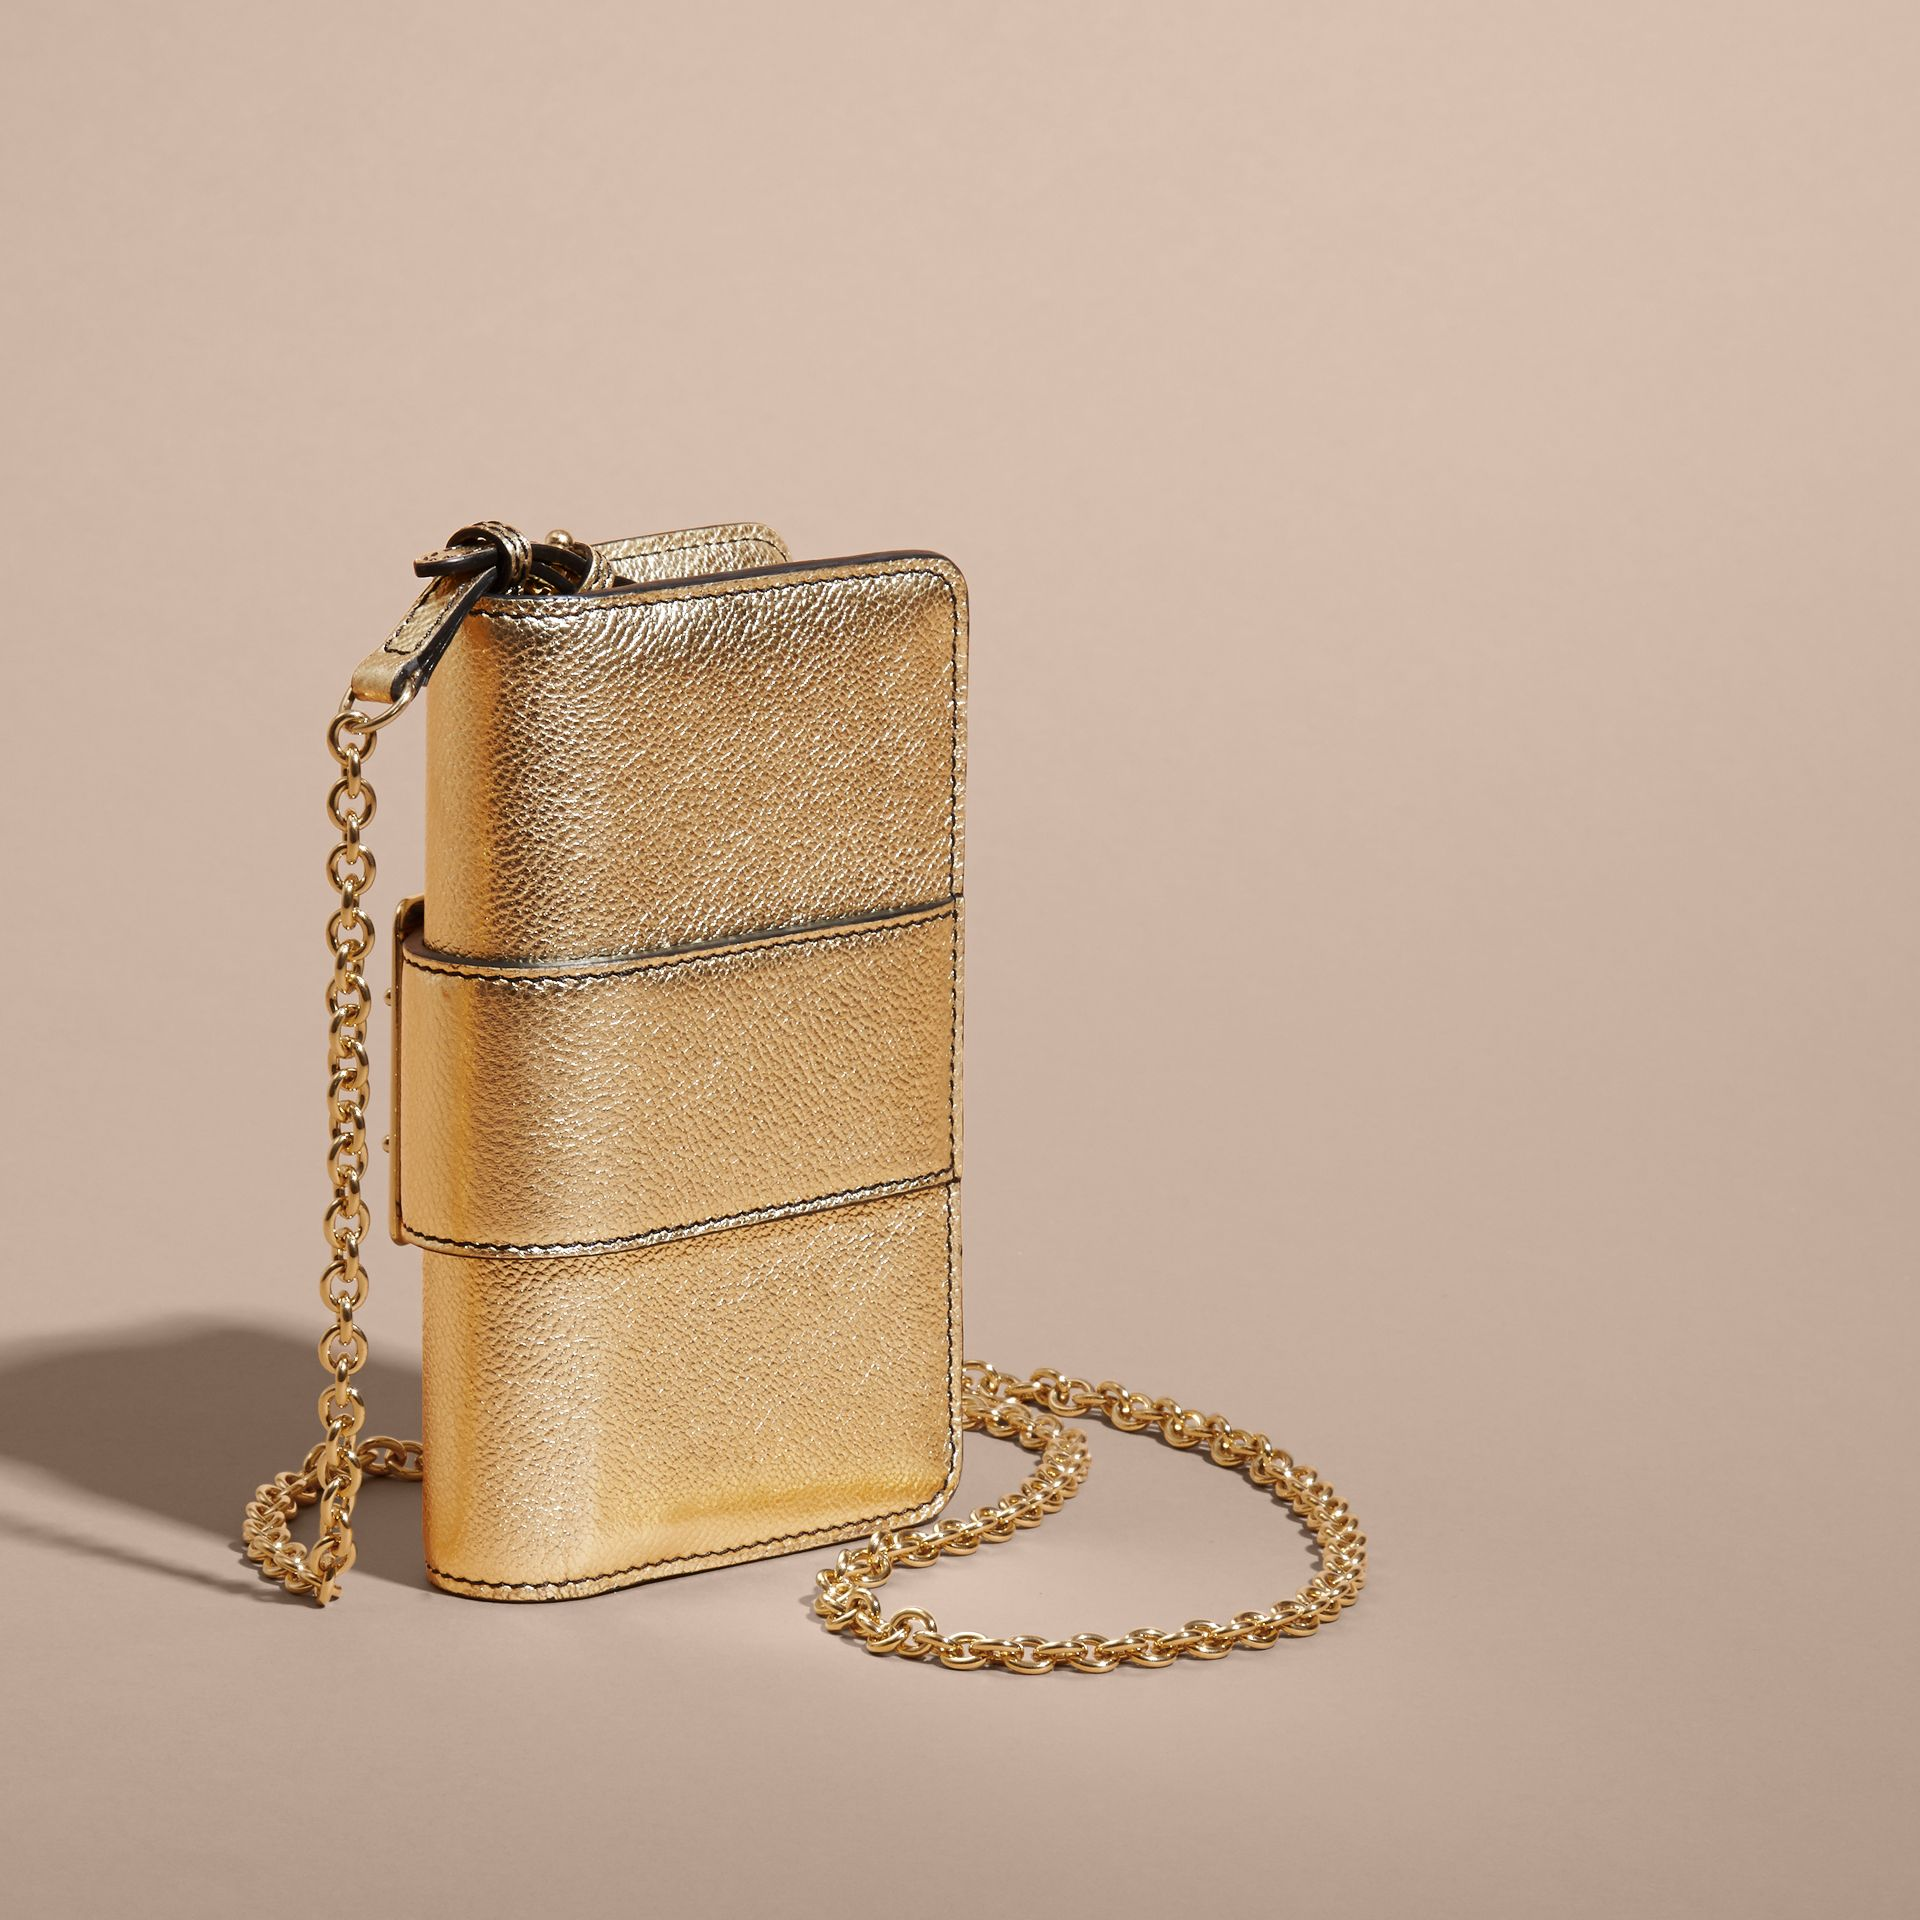 Gold The Mini Buckle Bag in Metallic Grainy Leather Gold - gallery image 5